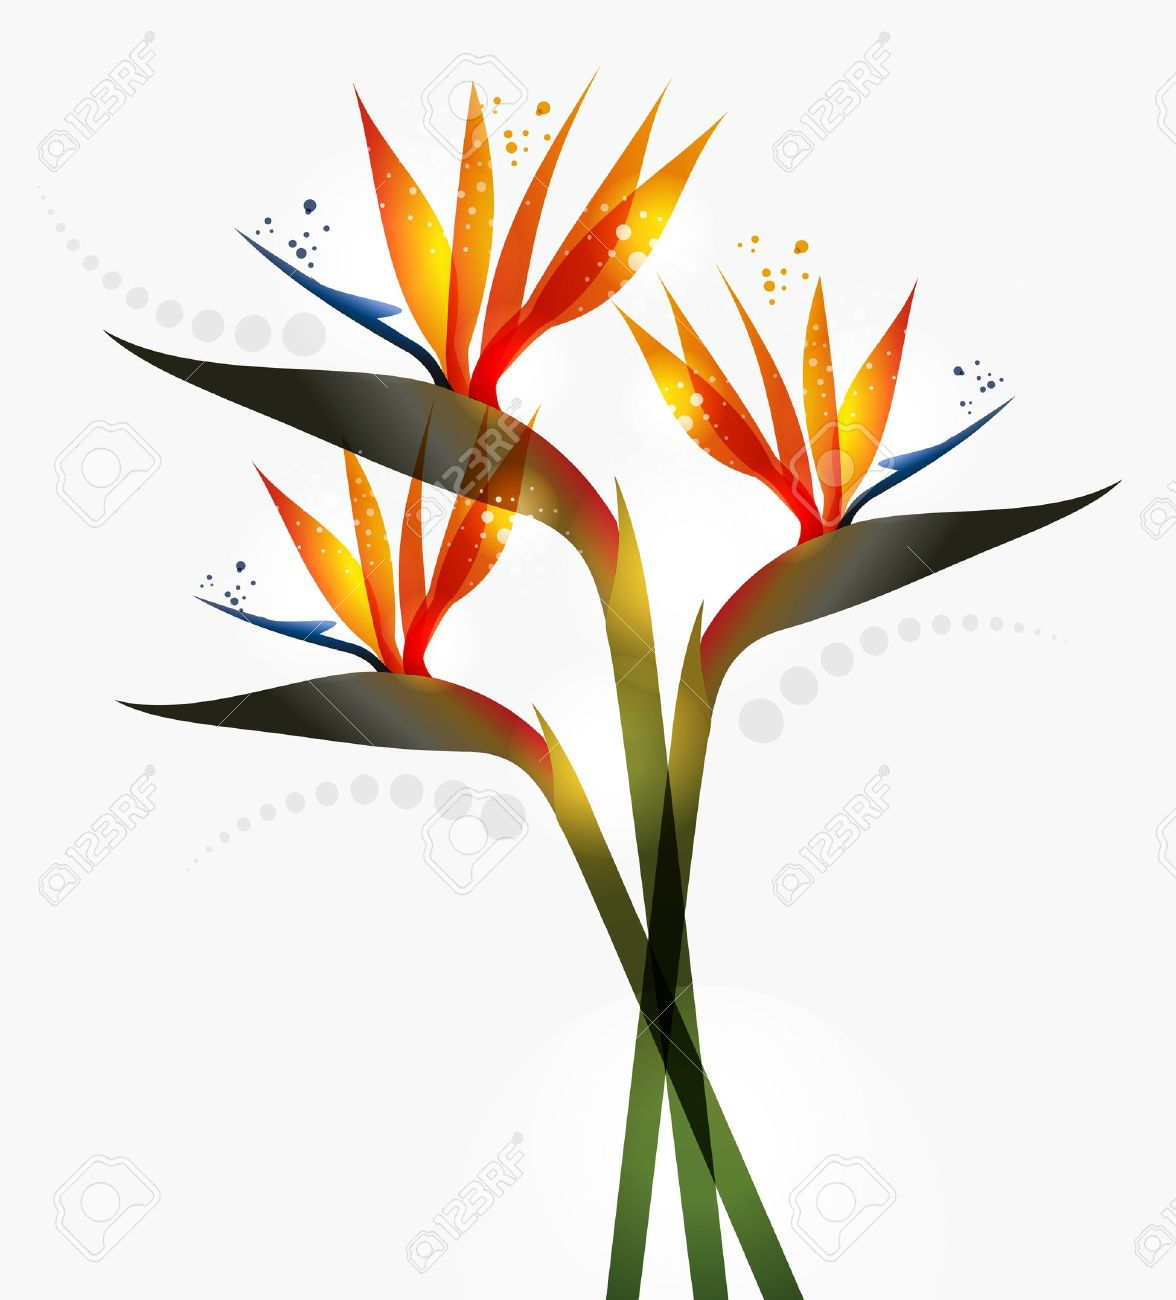 8037 bird of paradise stock illustrations cliparts and royalty bird of paradise flower isolated over white background eps10 file version this illustration contains buycottarizona